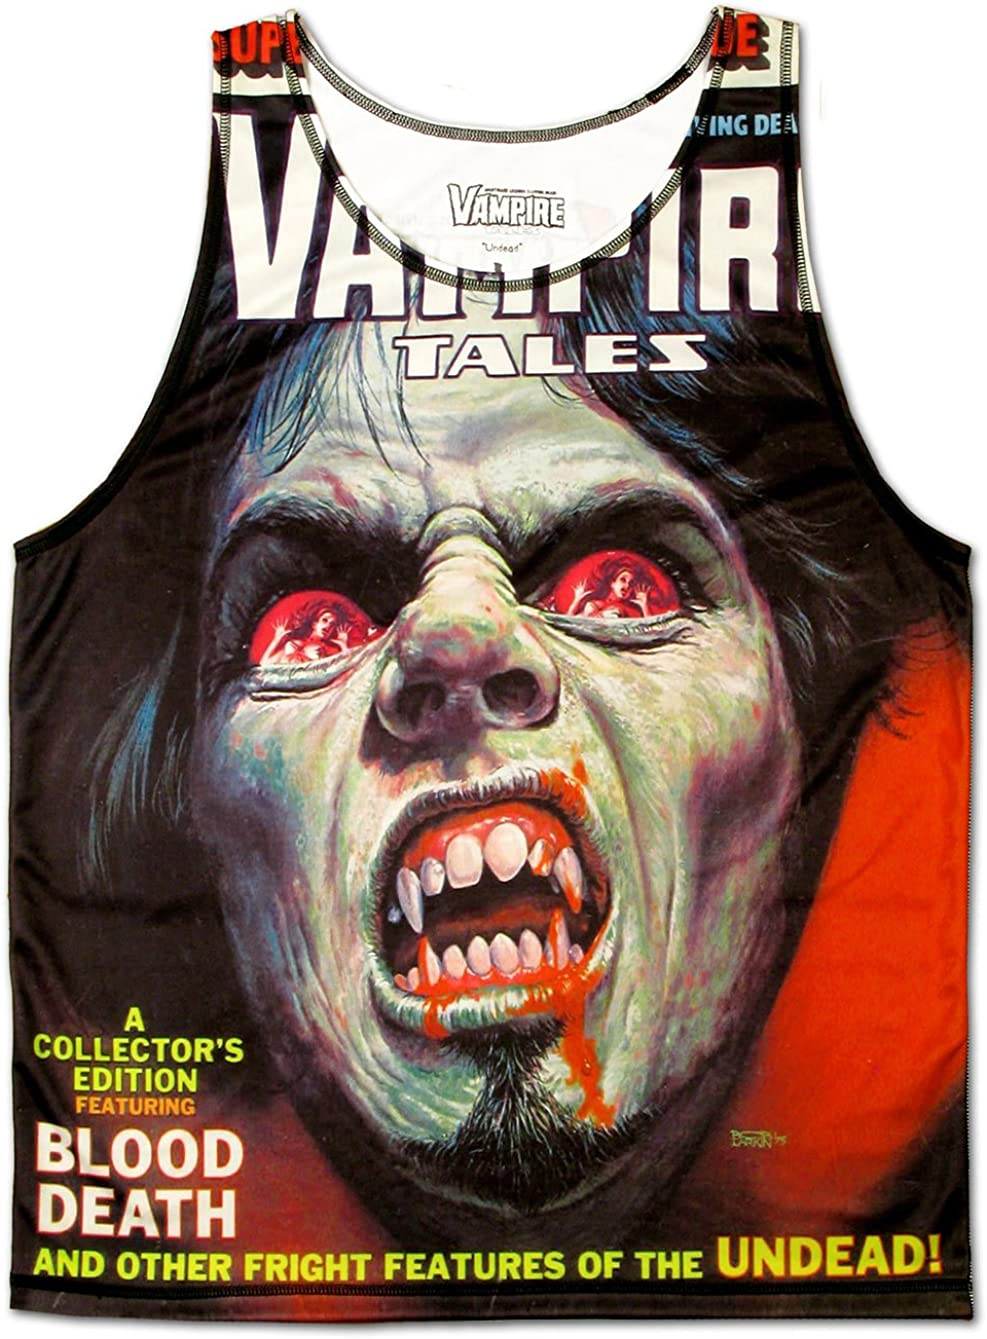 Vampire Tales Demon Eyes Horror T-Shirt Undead Tan Dracula Sale price Max 65% OFF Scary